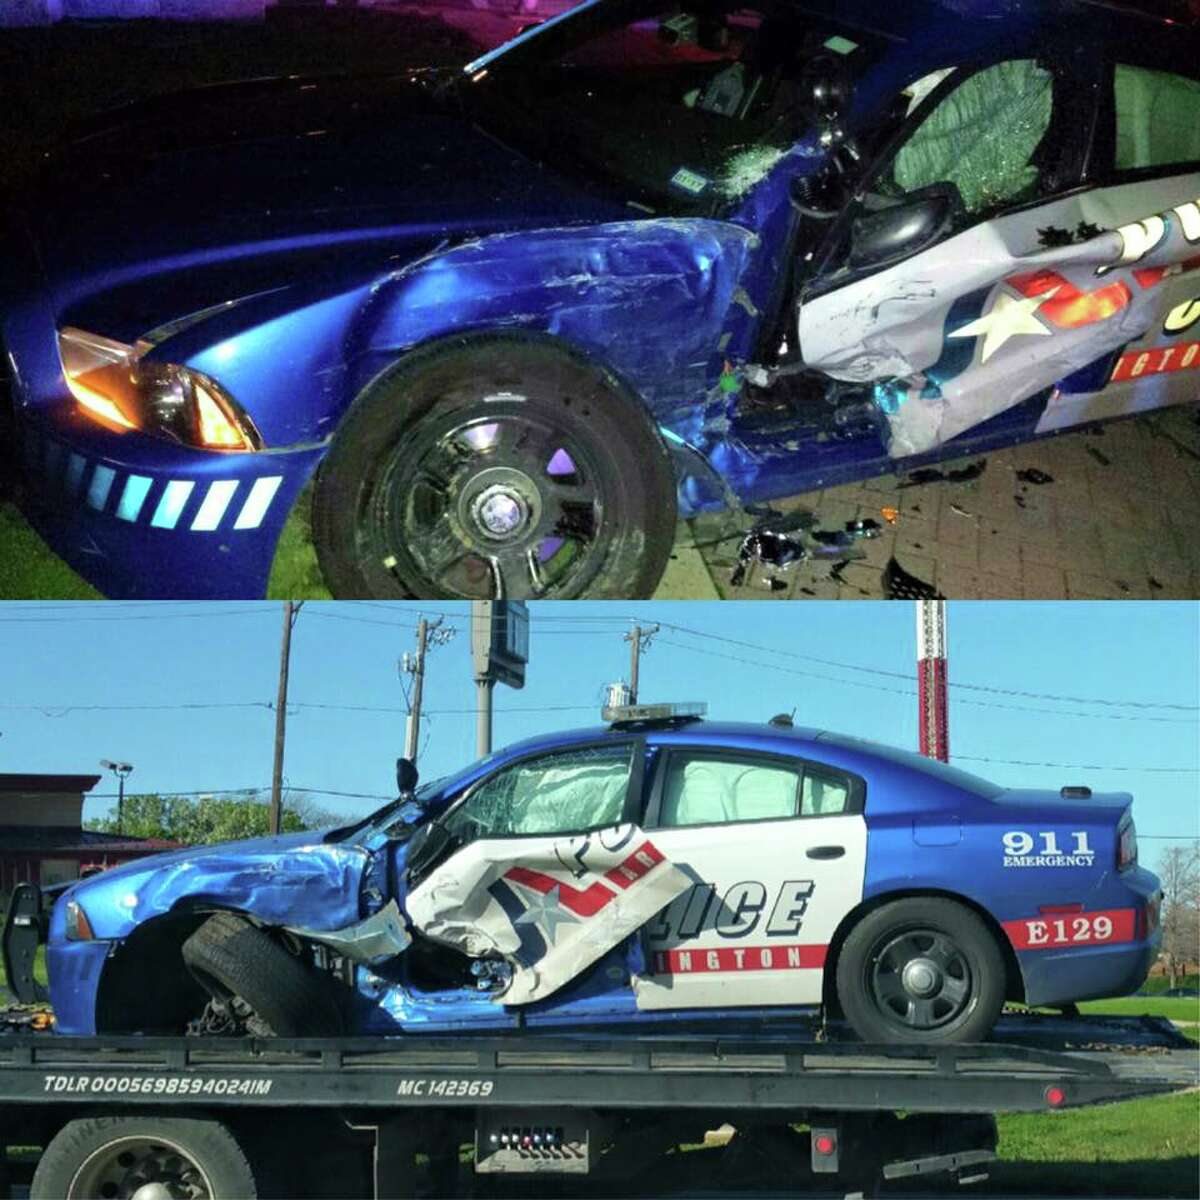 Josue Pablo Mendez-Gurrero has been charged with aggravated assault of a public servant and evading arrest after allegedly crashing his car into a police patrol car and pinning the officer inside after a high-speed chase early Sunday morning.